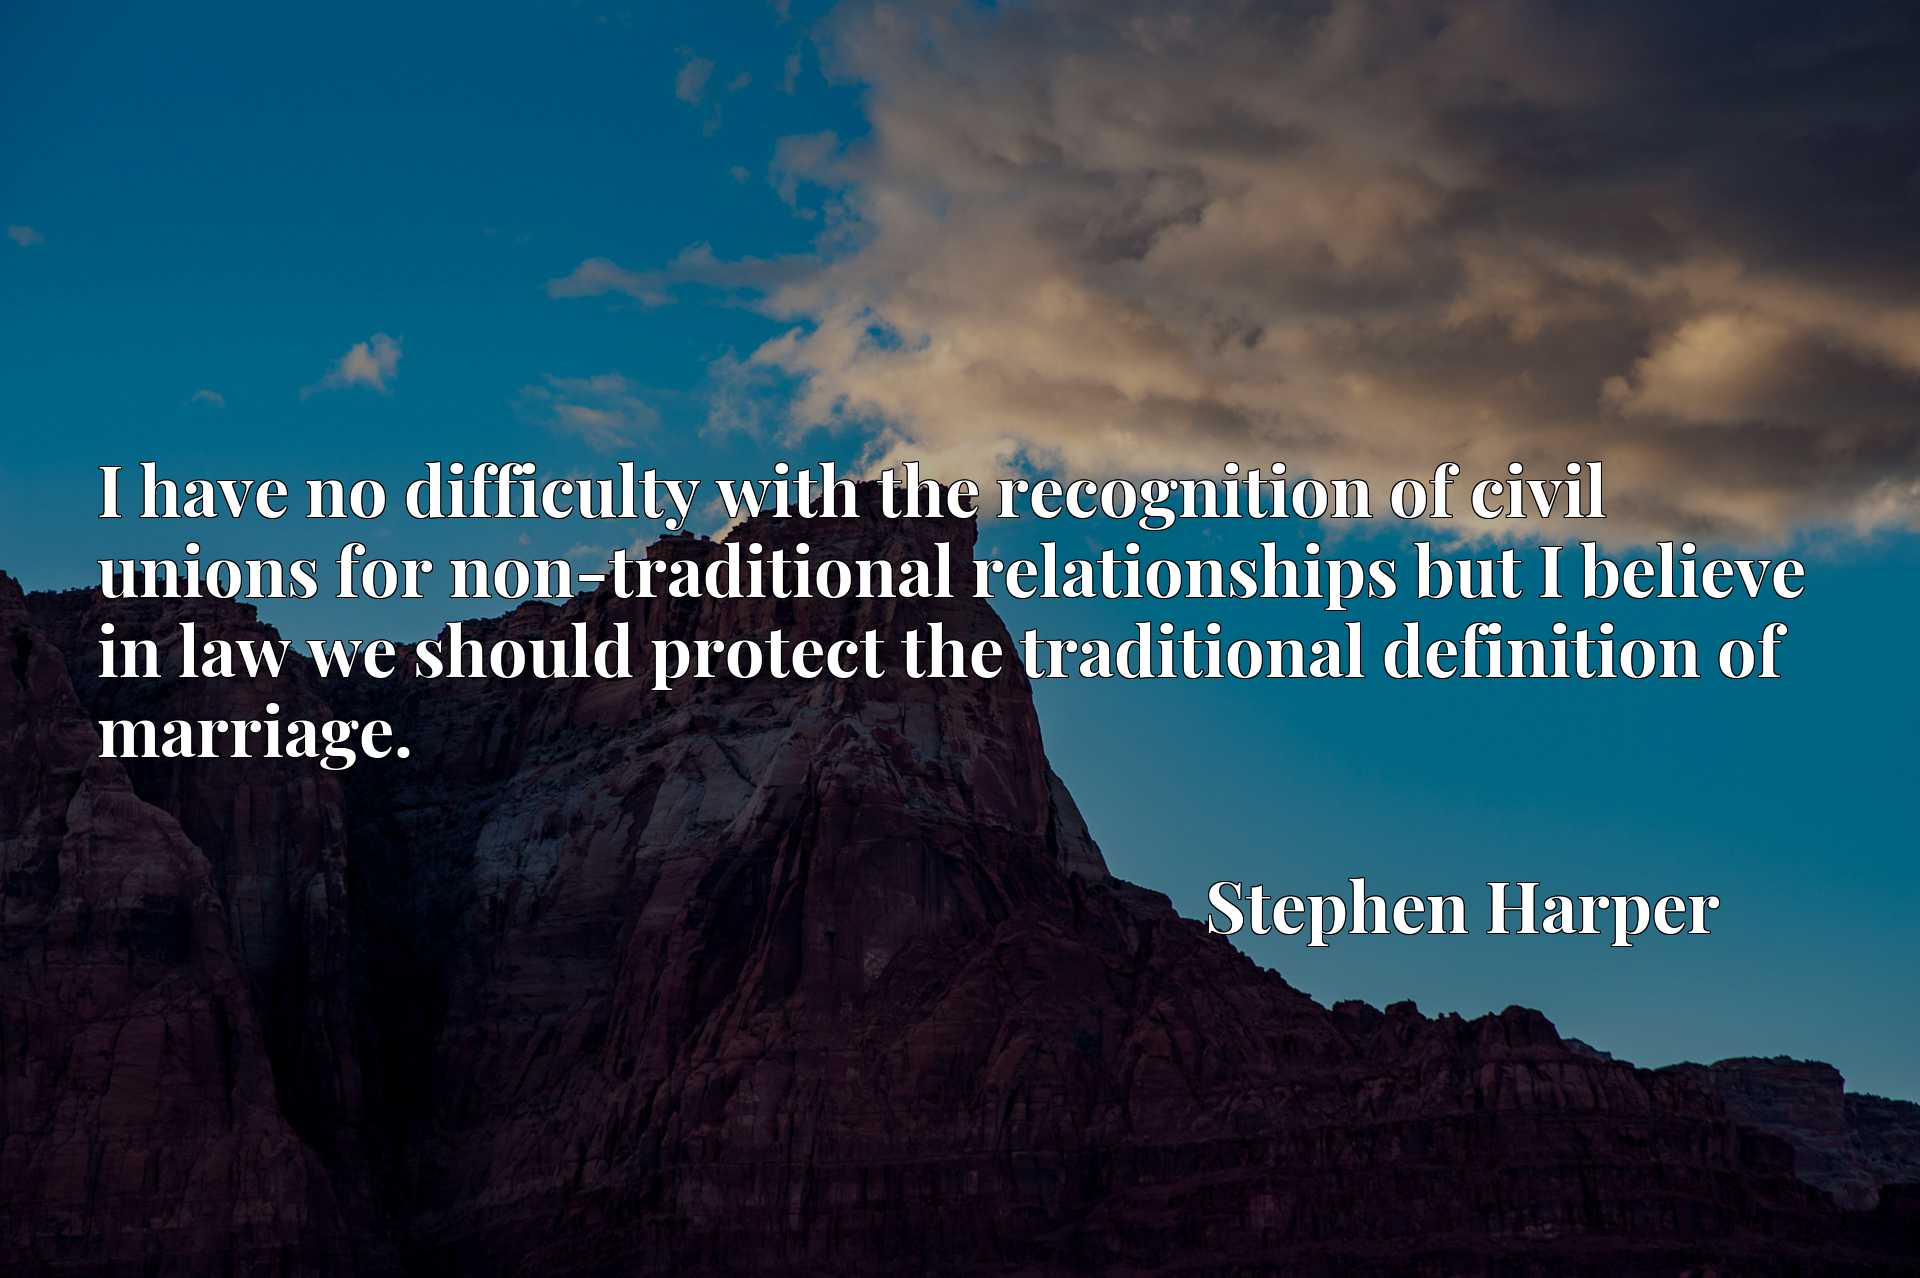 I have no difficulty with the recognition of civil unions for non-traditional relationships but I believe in law we should protect the traditional definition of marriage.